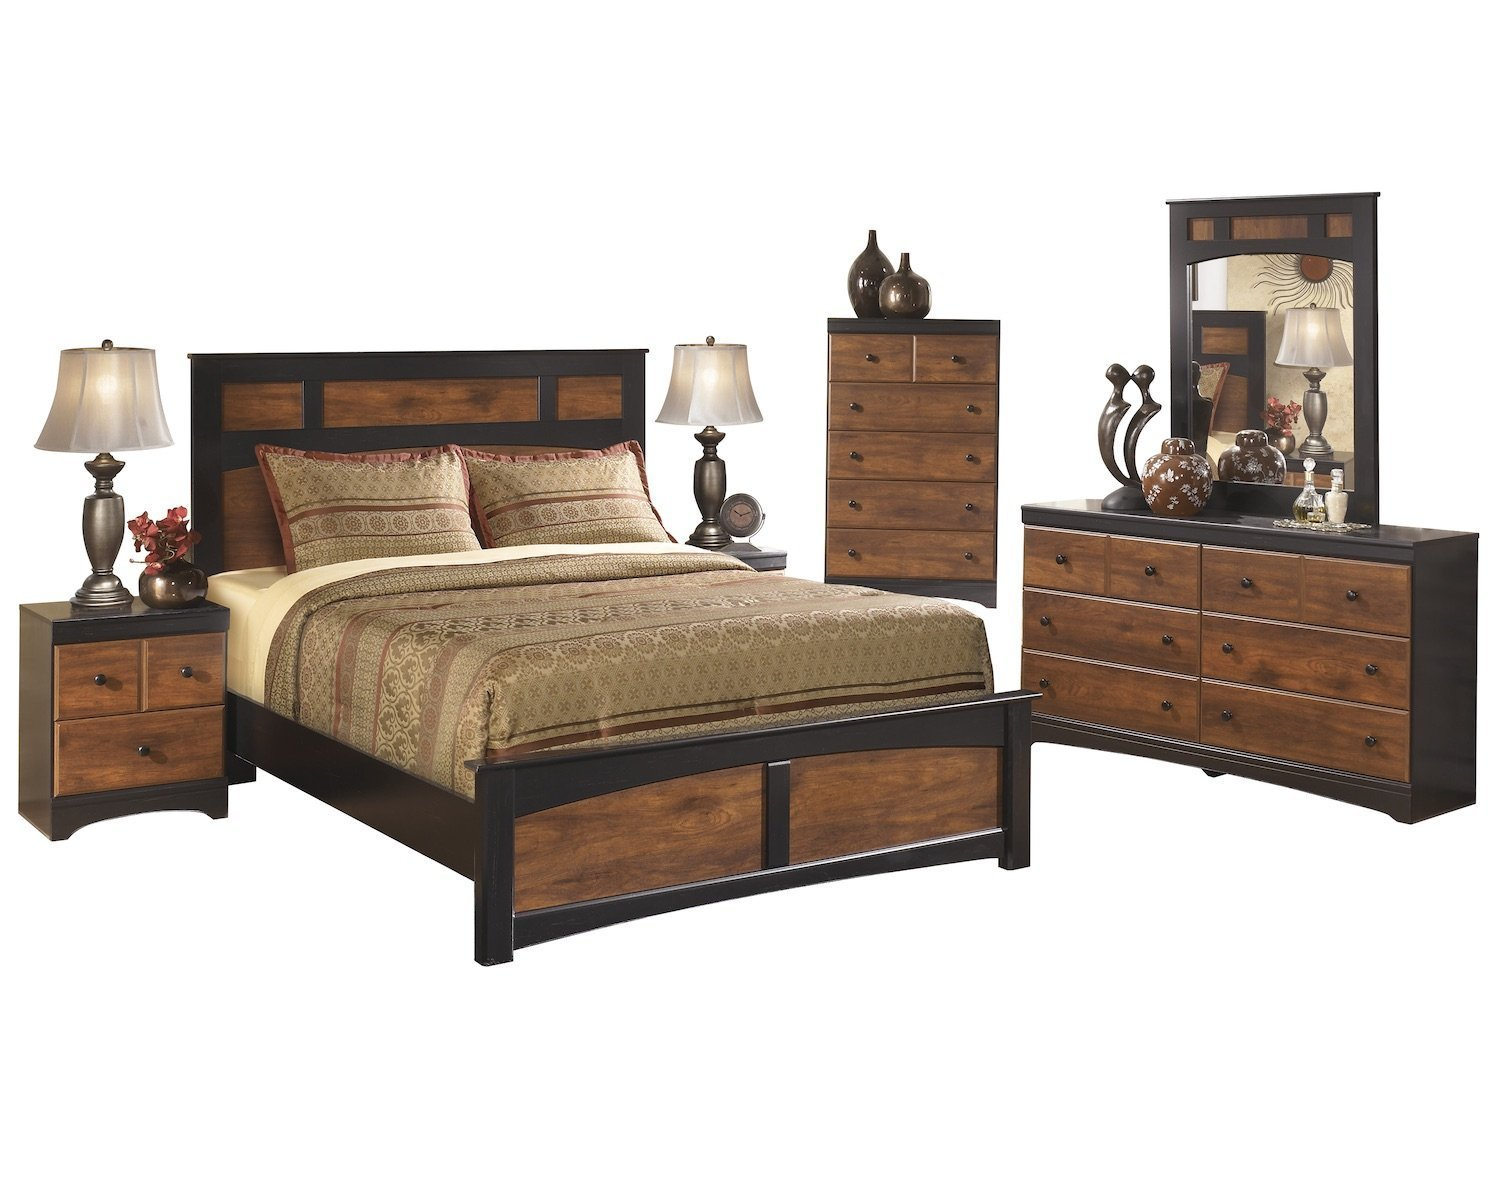 Ashley Aimwell 6 PC Queen Panel Bedroom Set with 2 Nightstand & Chest in Dark Brown